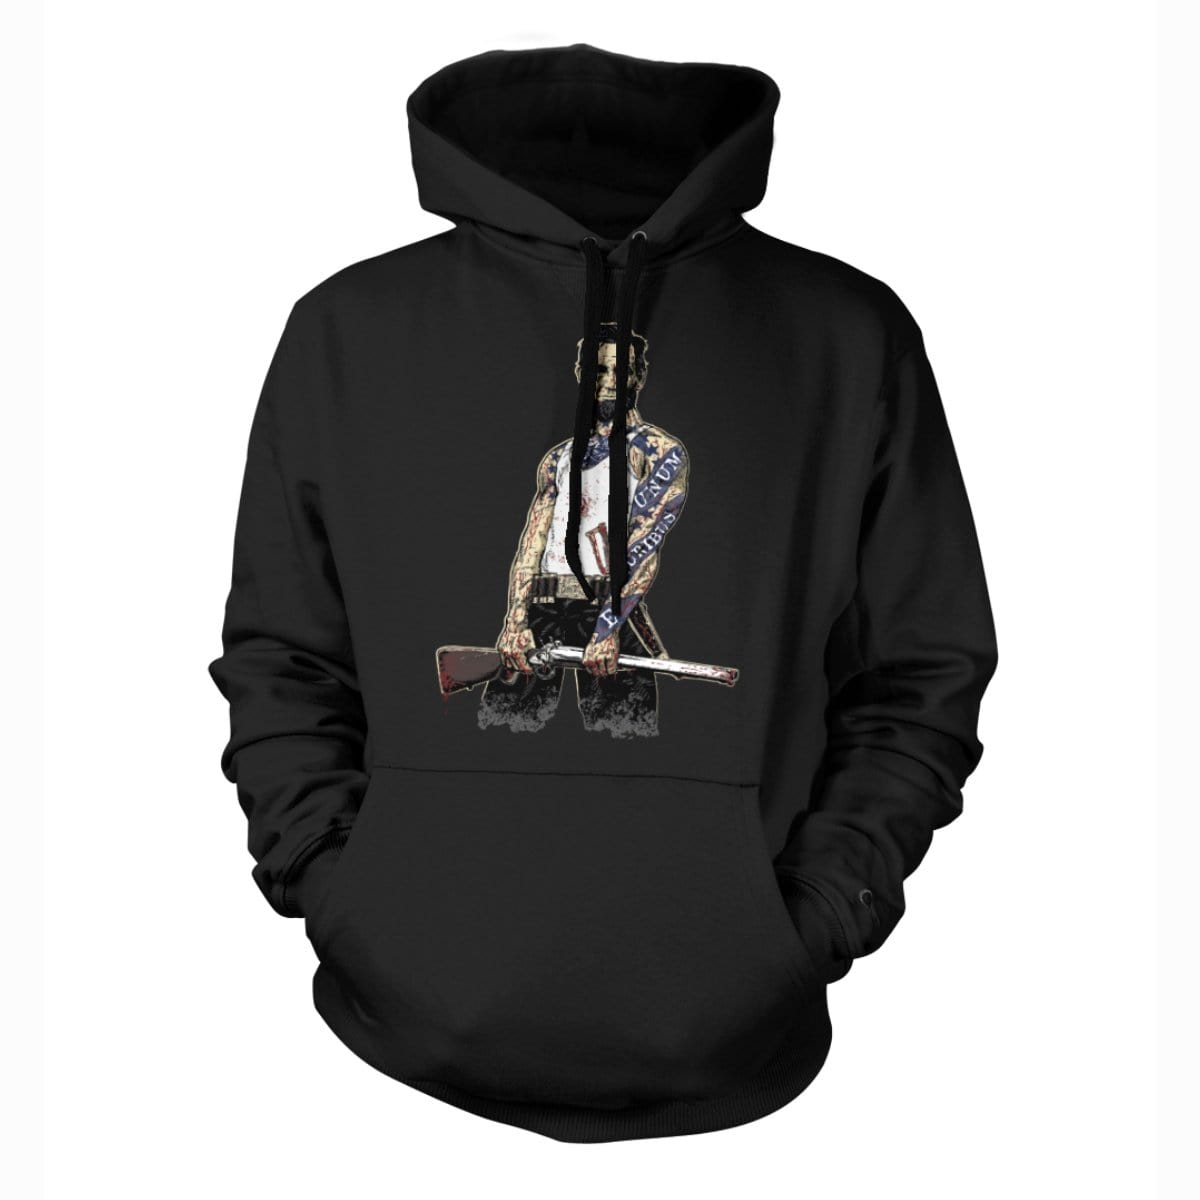 Original Pipe Hitter - Abe Hoodie - Black - T-Shirts - Pipe Hitters Union